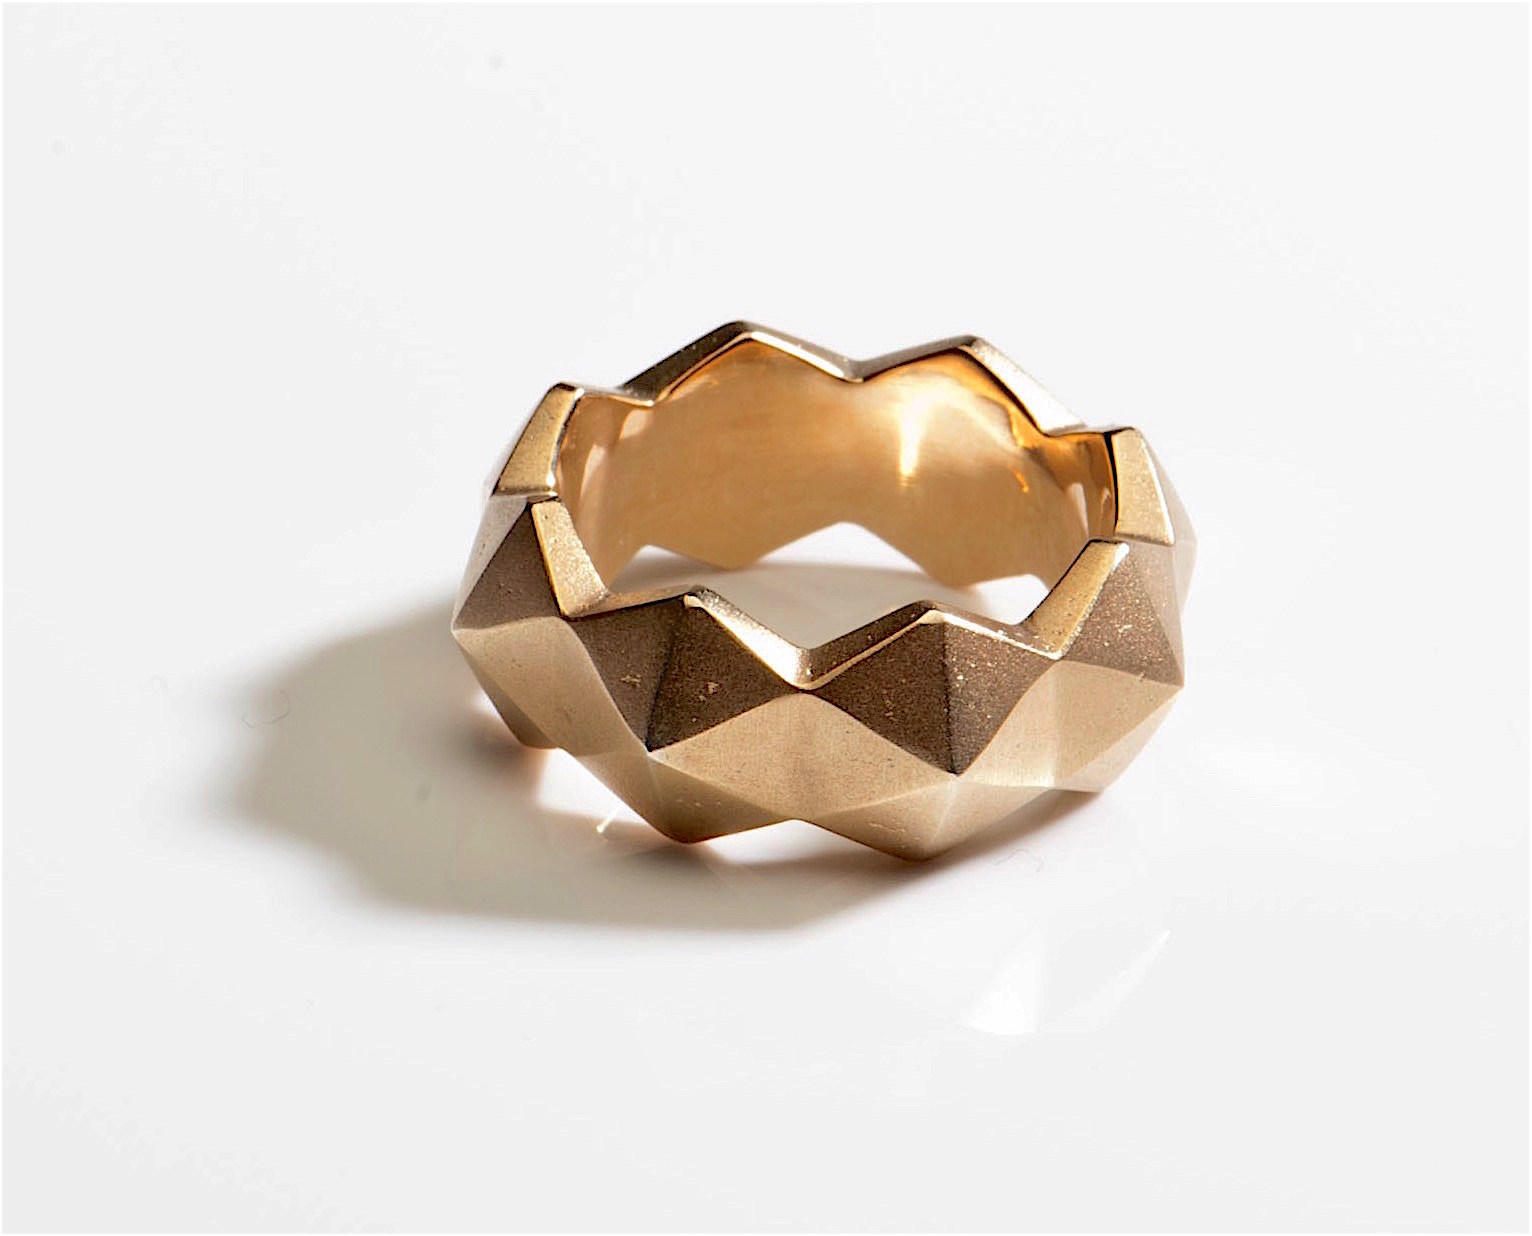 ring hexagon pyramid studs silver gold plated.jpg